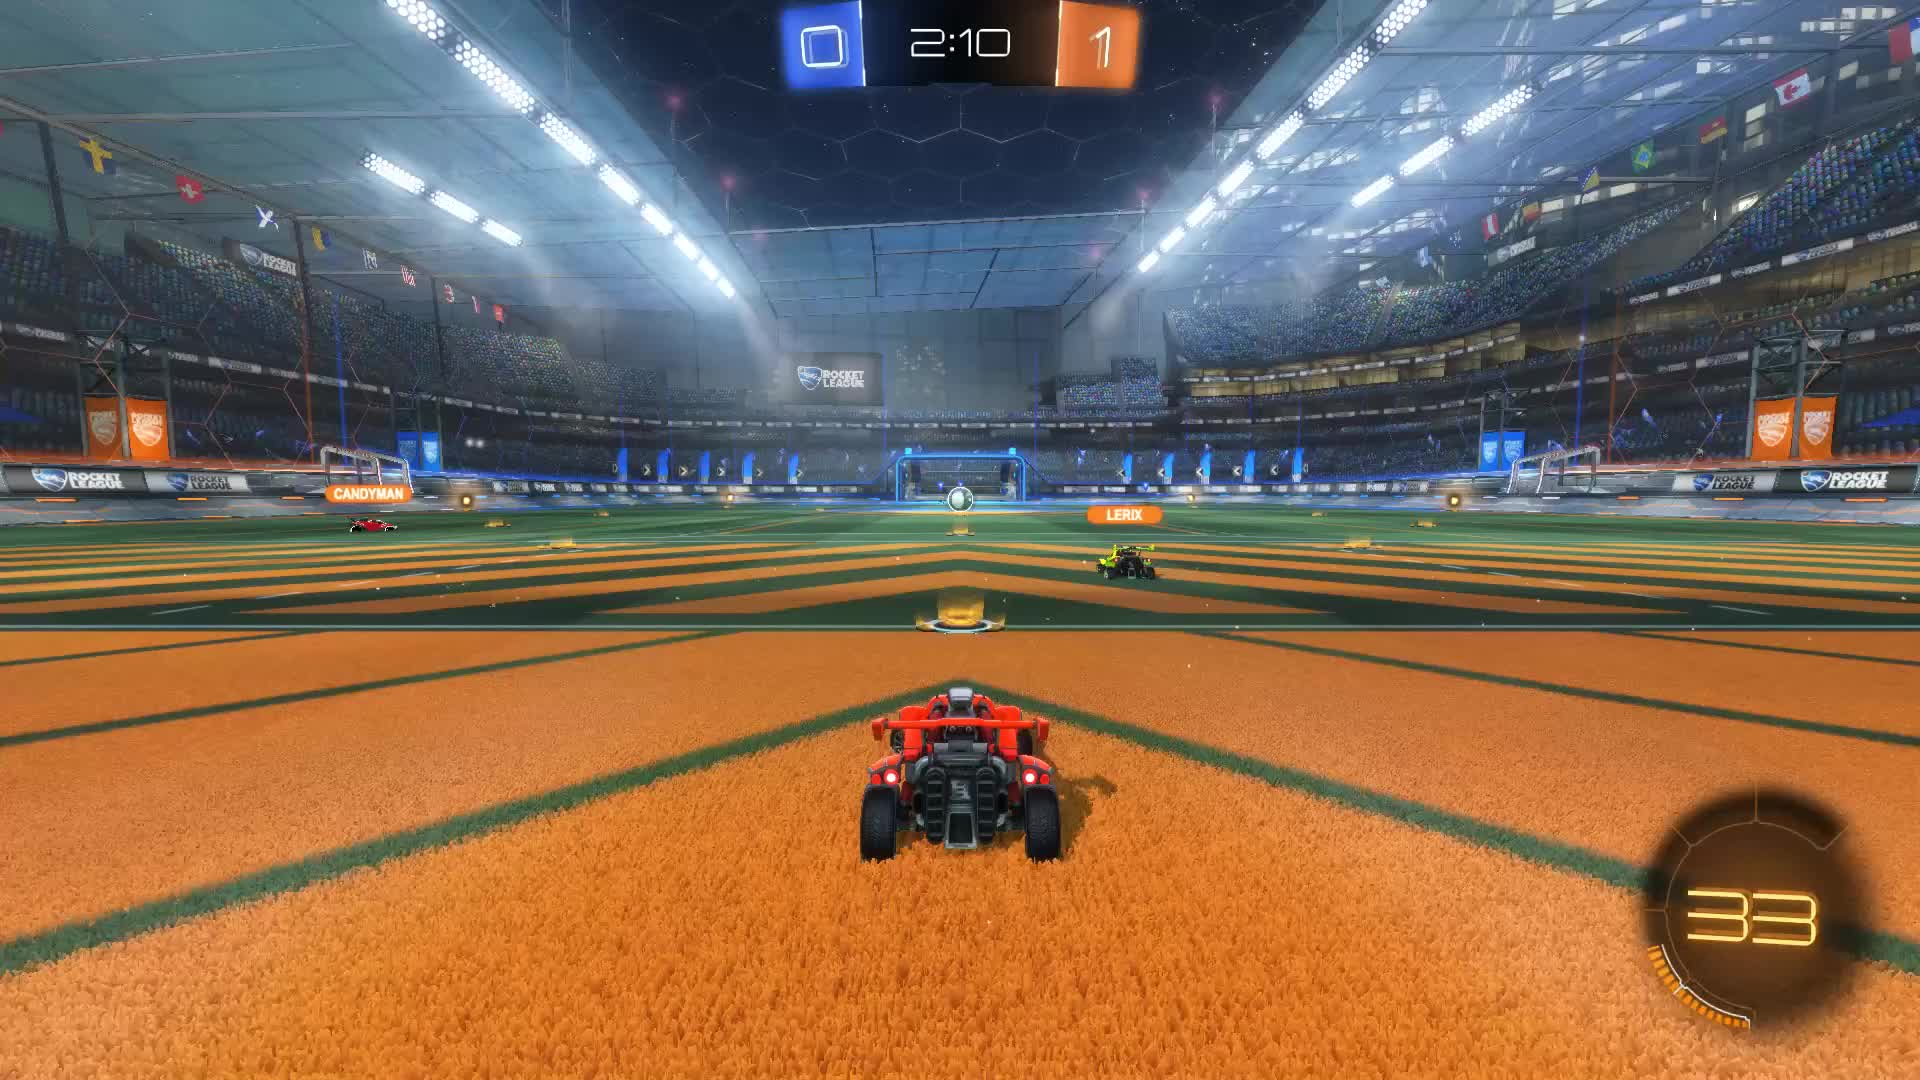 Gif Your Game, GifYourGame, Goal, Nymph, Rocket League, RocketLeague, Goal 2: Nymph GIFs